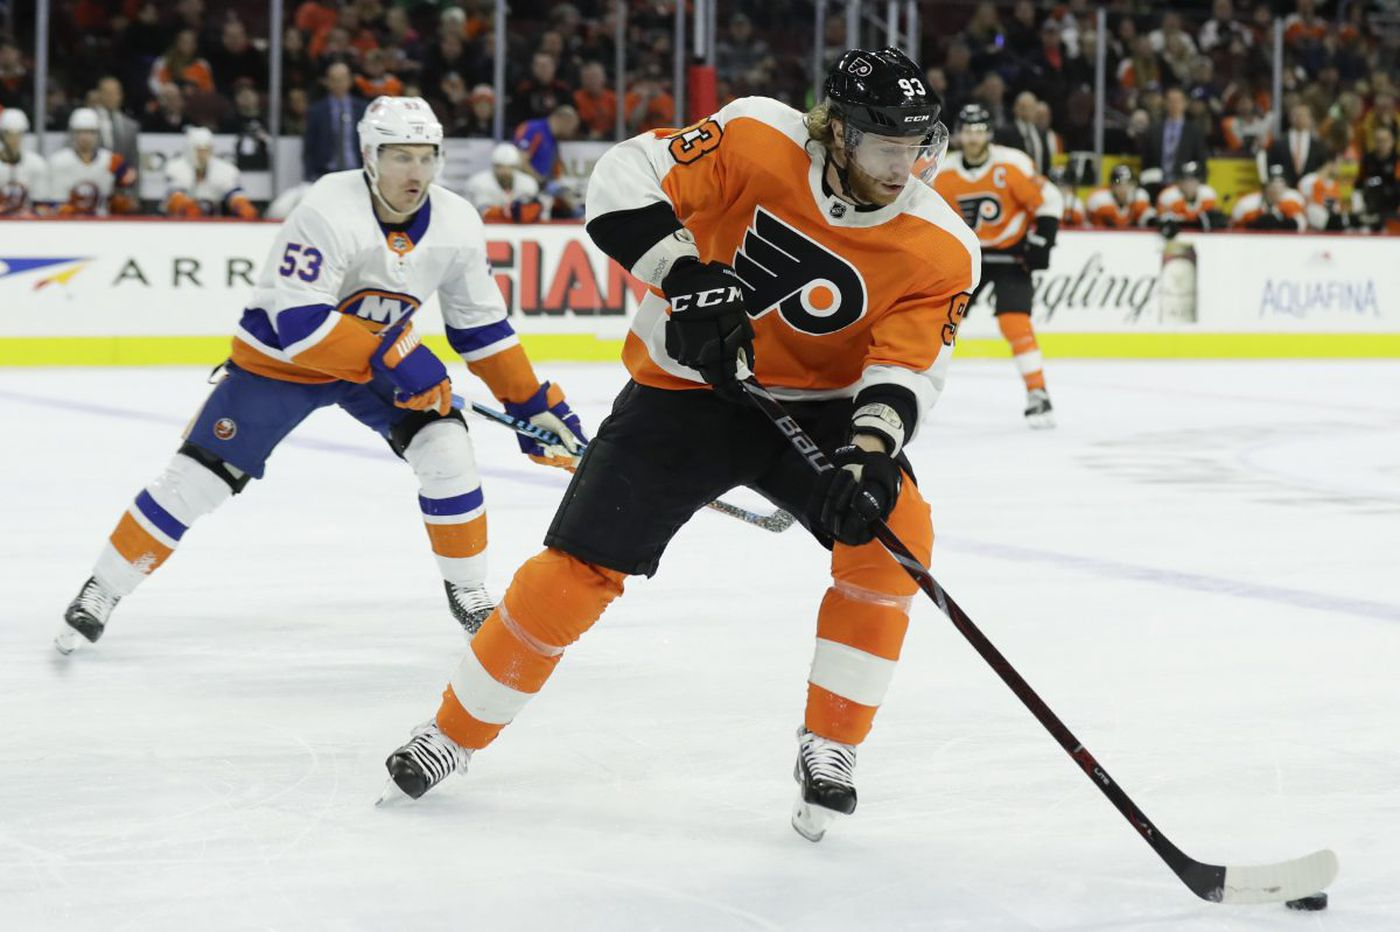 Flyers feel good at NHL All-Star break, but division rivals loom in Stanley Cup playoffs chase